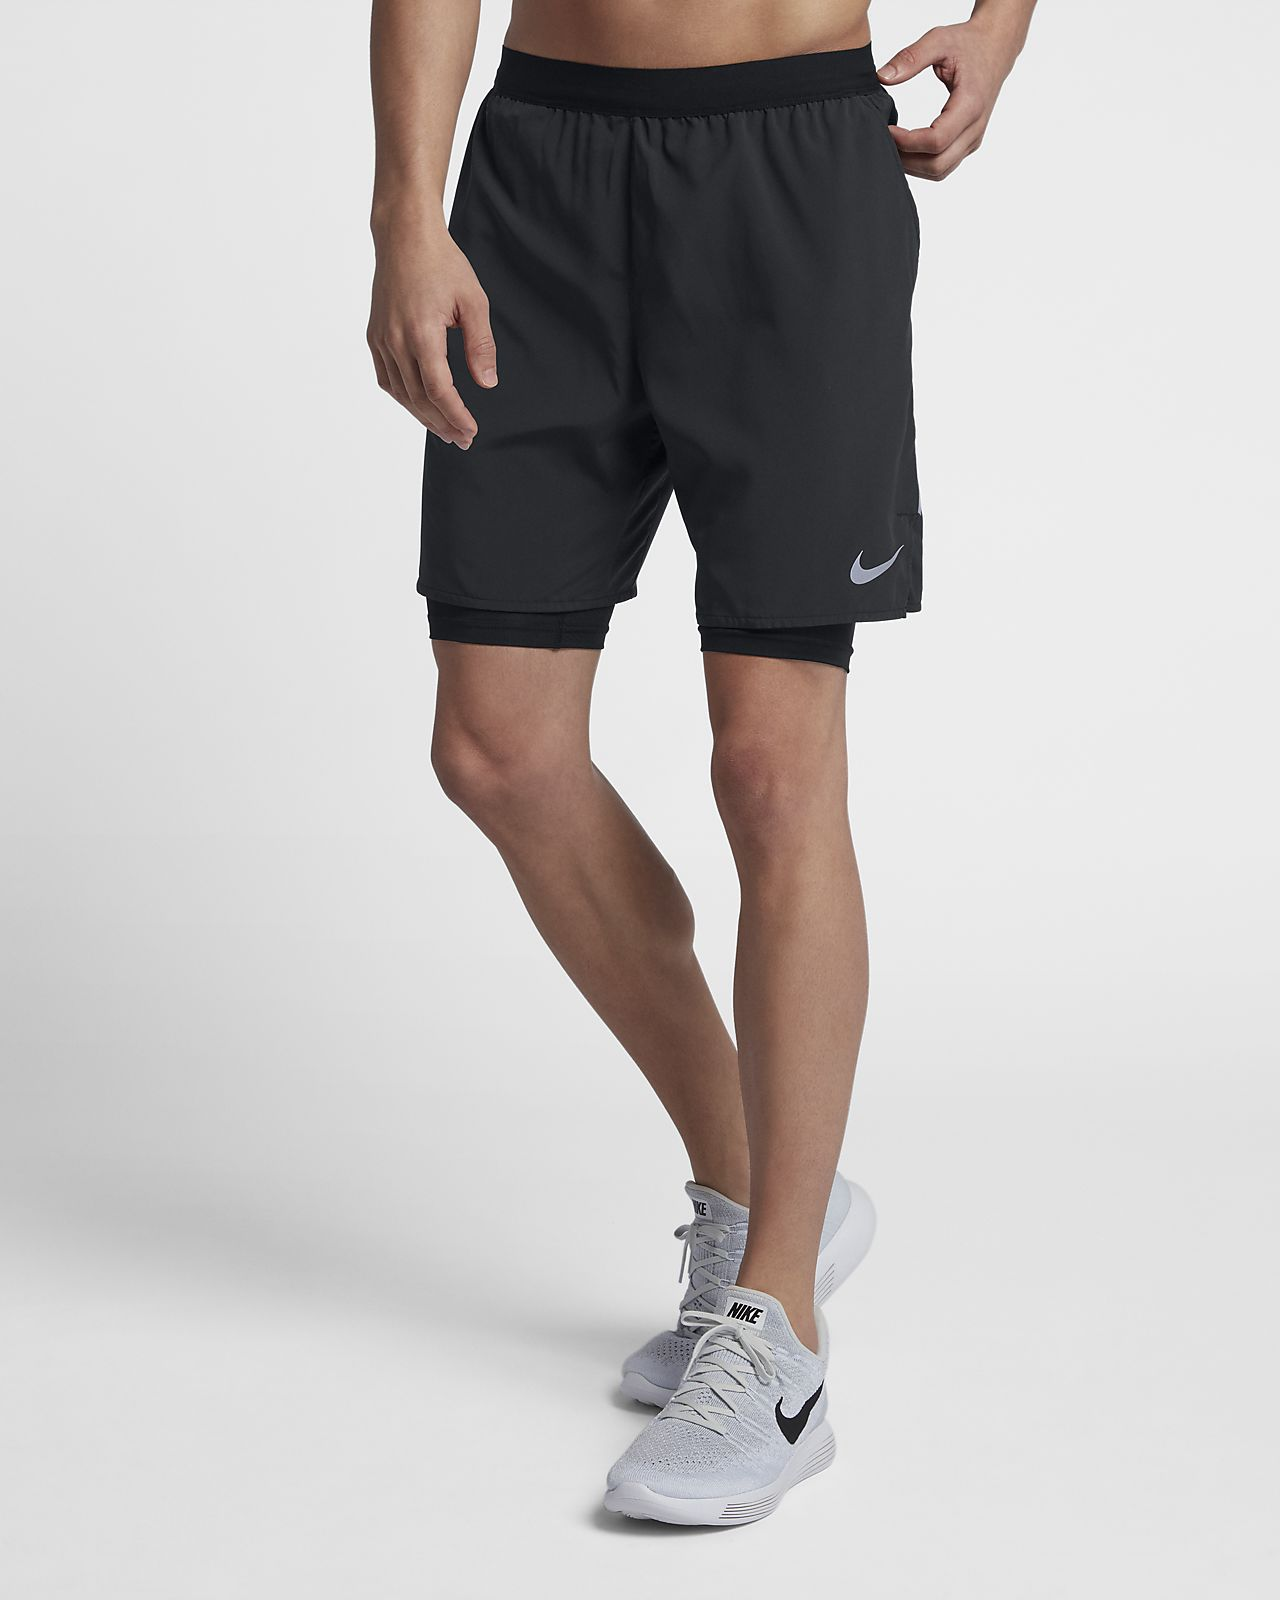 d2f0c772ac Nike Distance 2-in-1 Men s 7